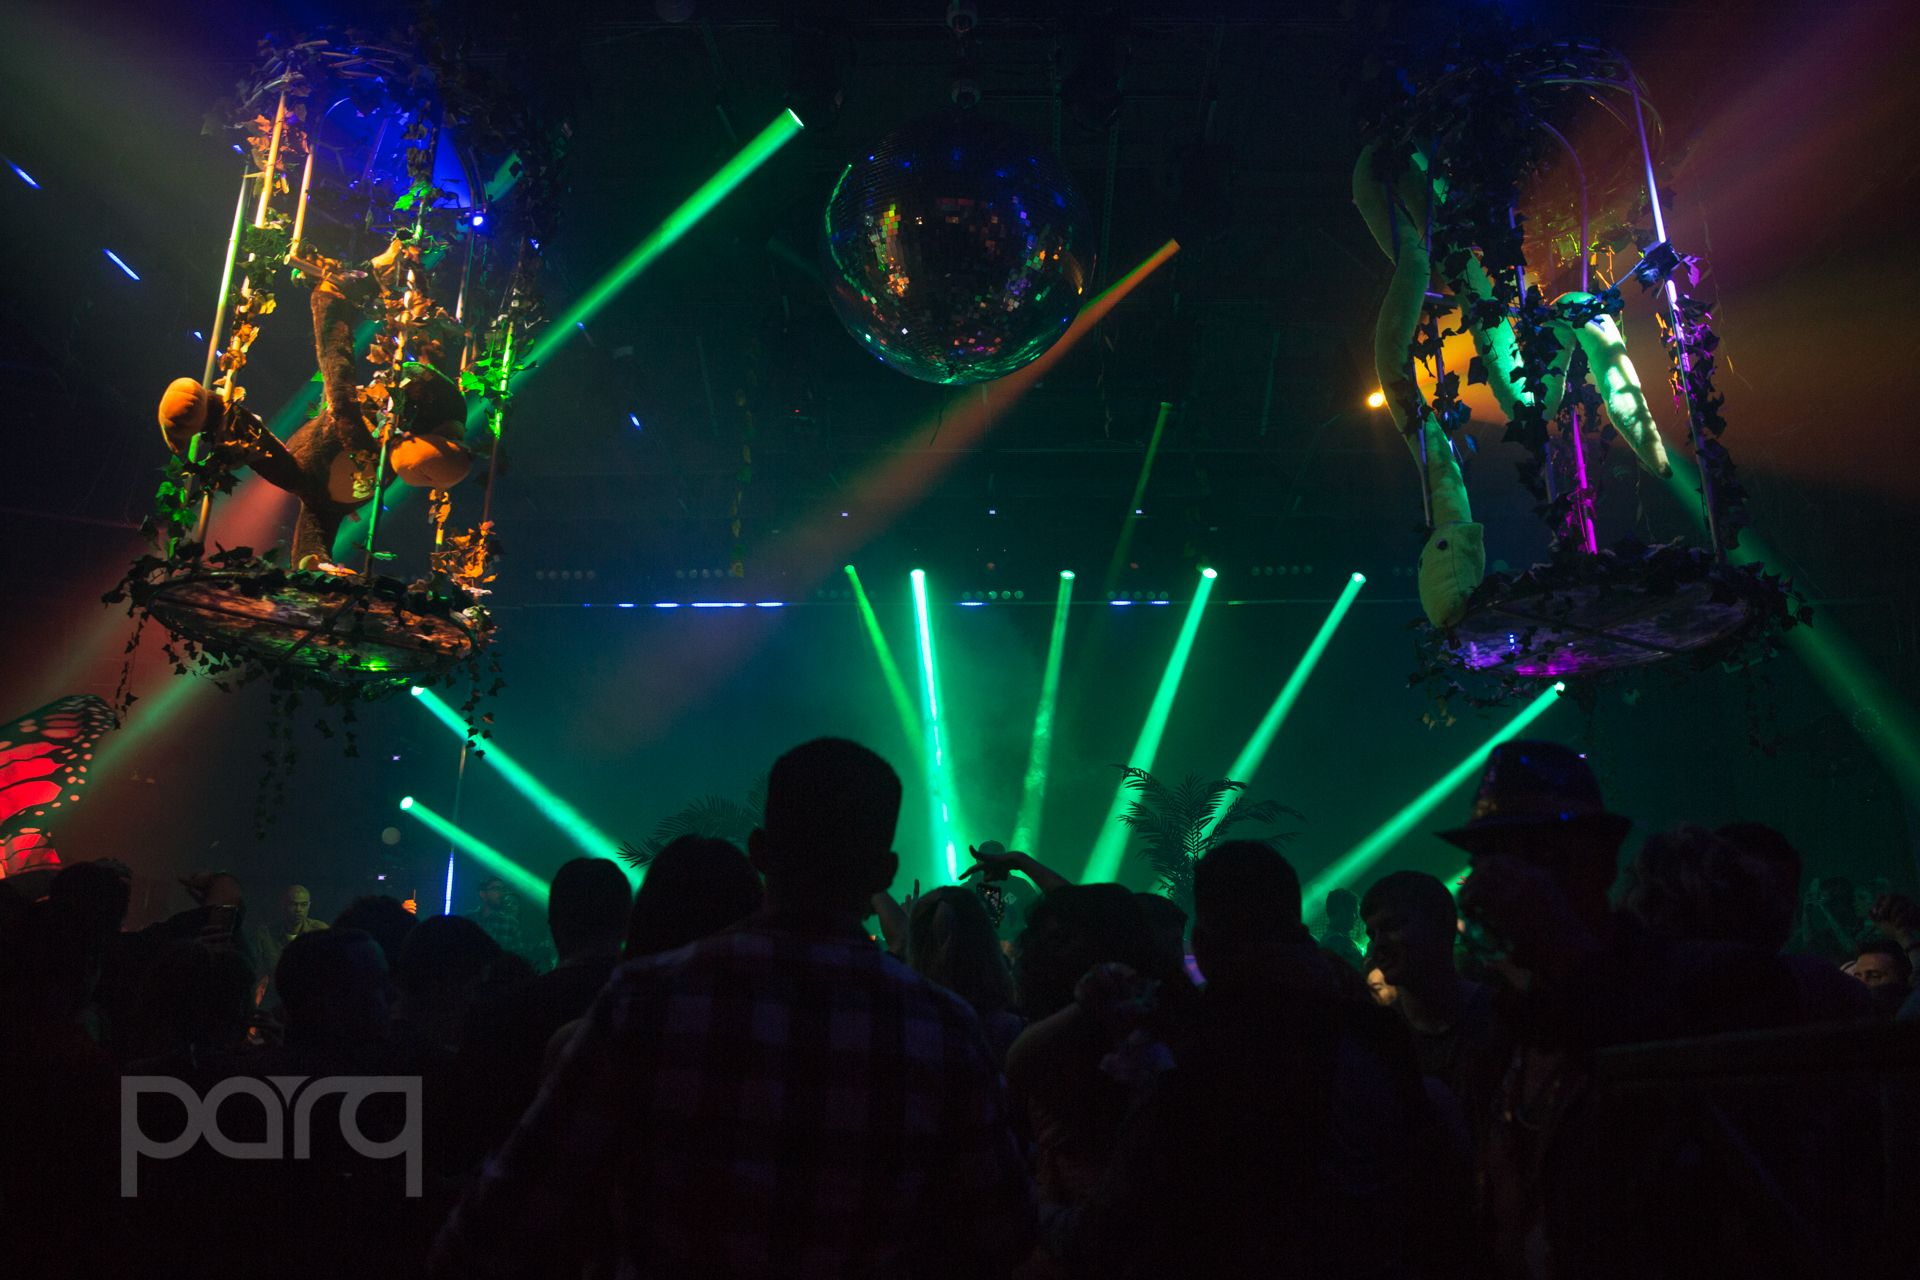 San-Diego-Nightclub-Zoo Funktion-19.jpg